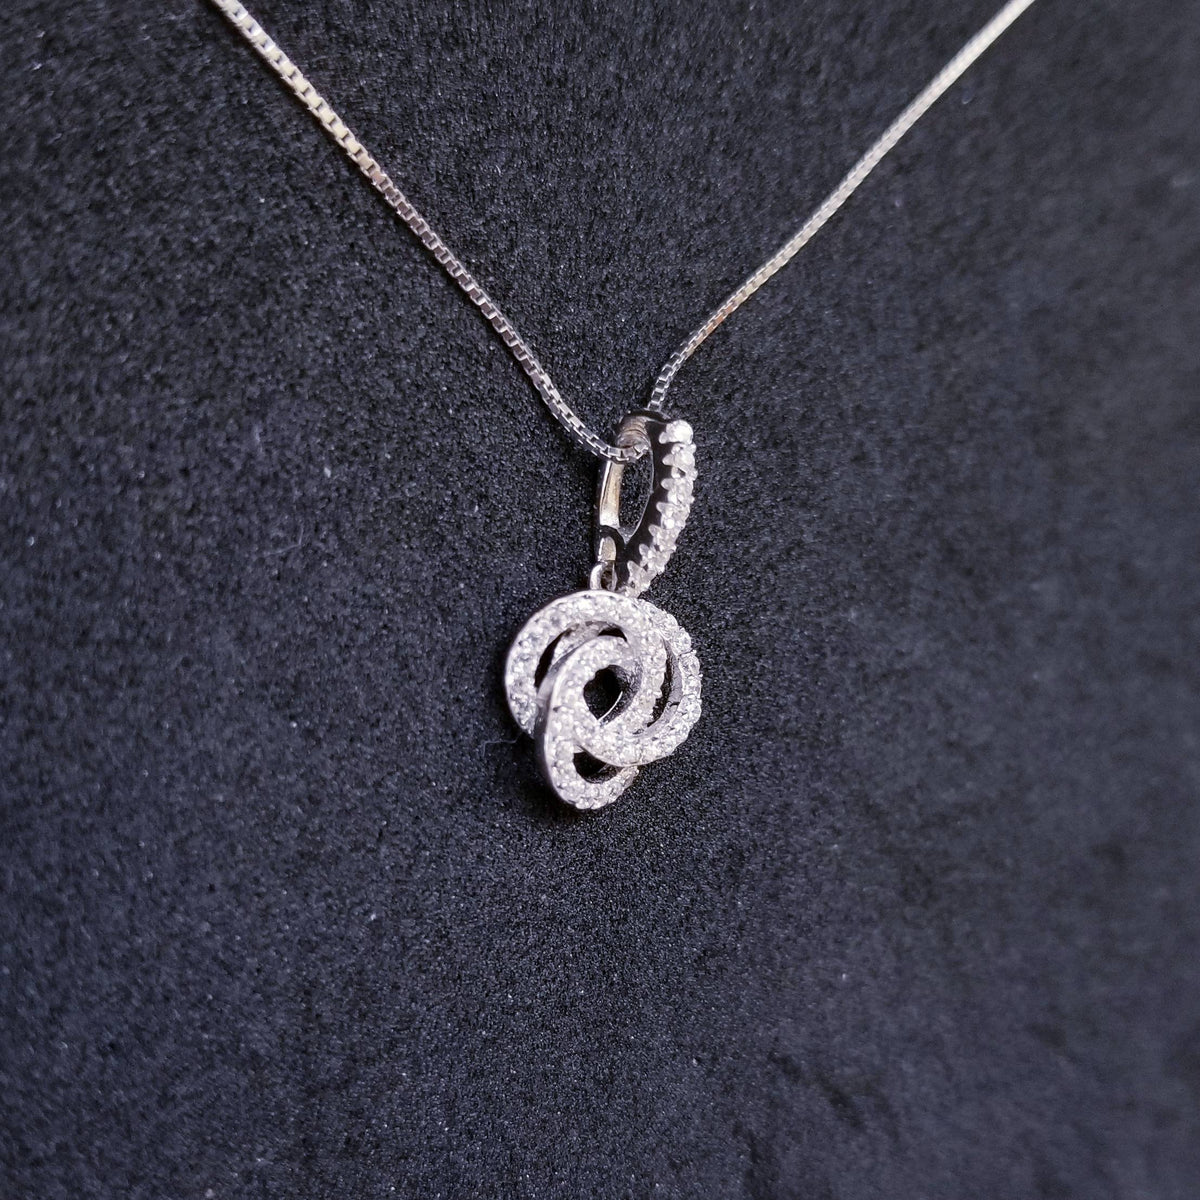 New 14k White Gold On 925 Sterling Silver Small Shiny 3 Linked Circles CZ Stones Pendant Free Chain